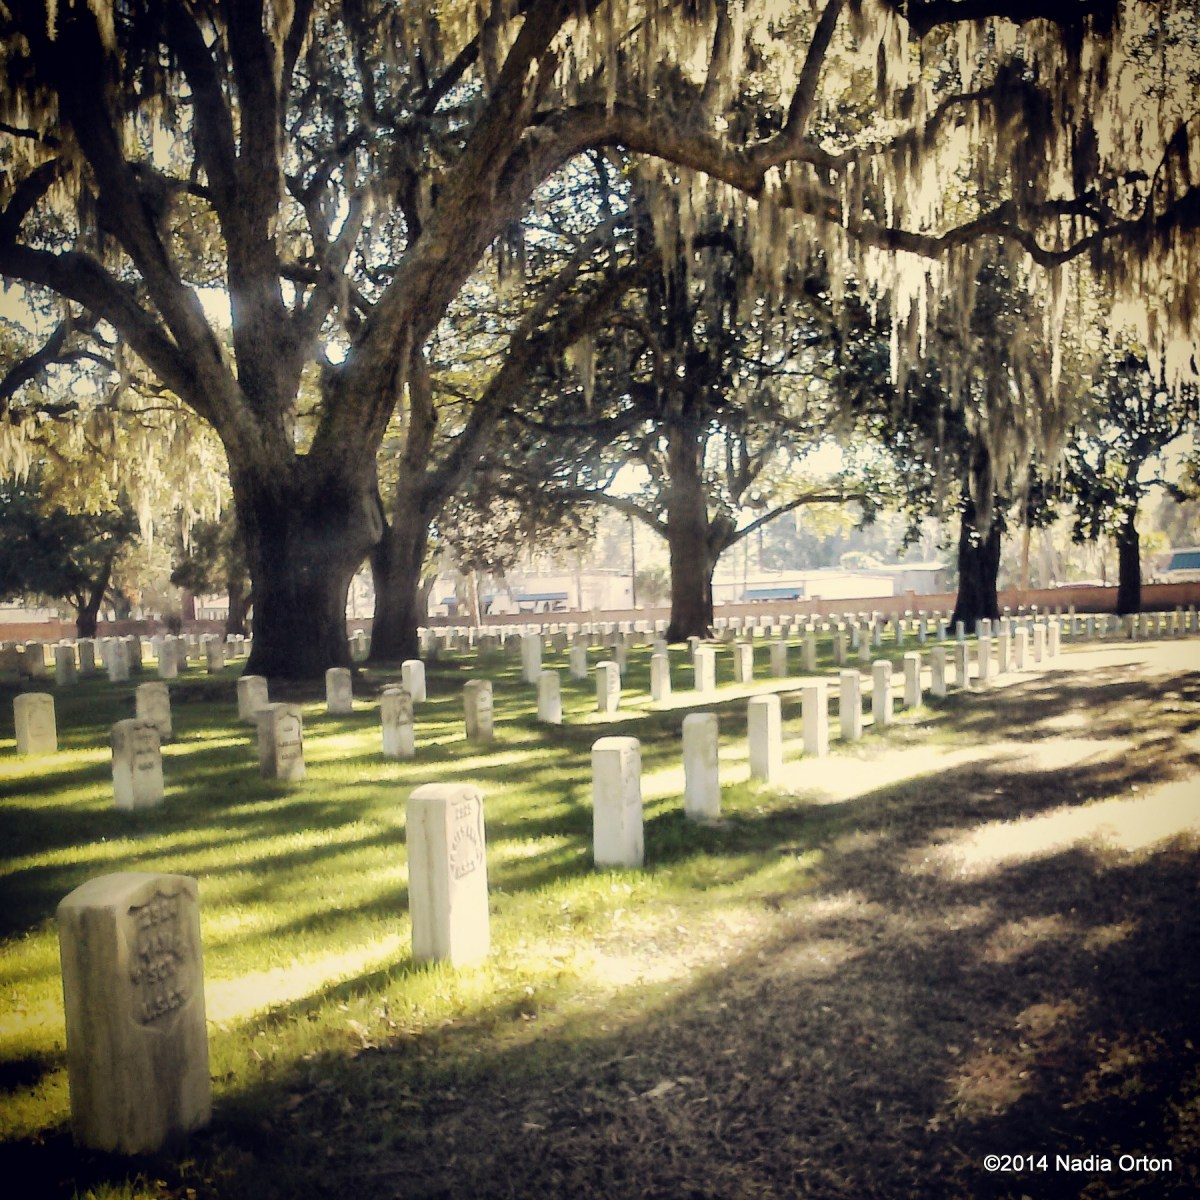 South Carolina Cemeteries